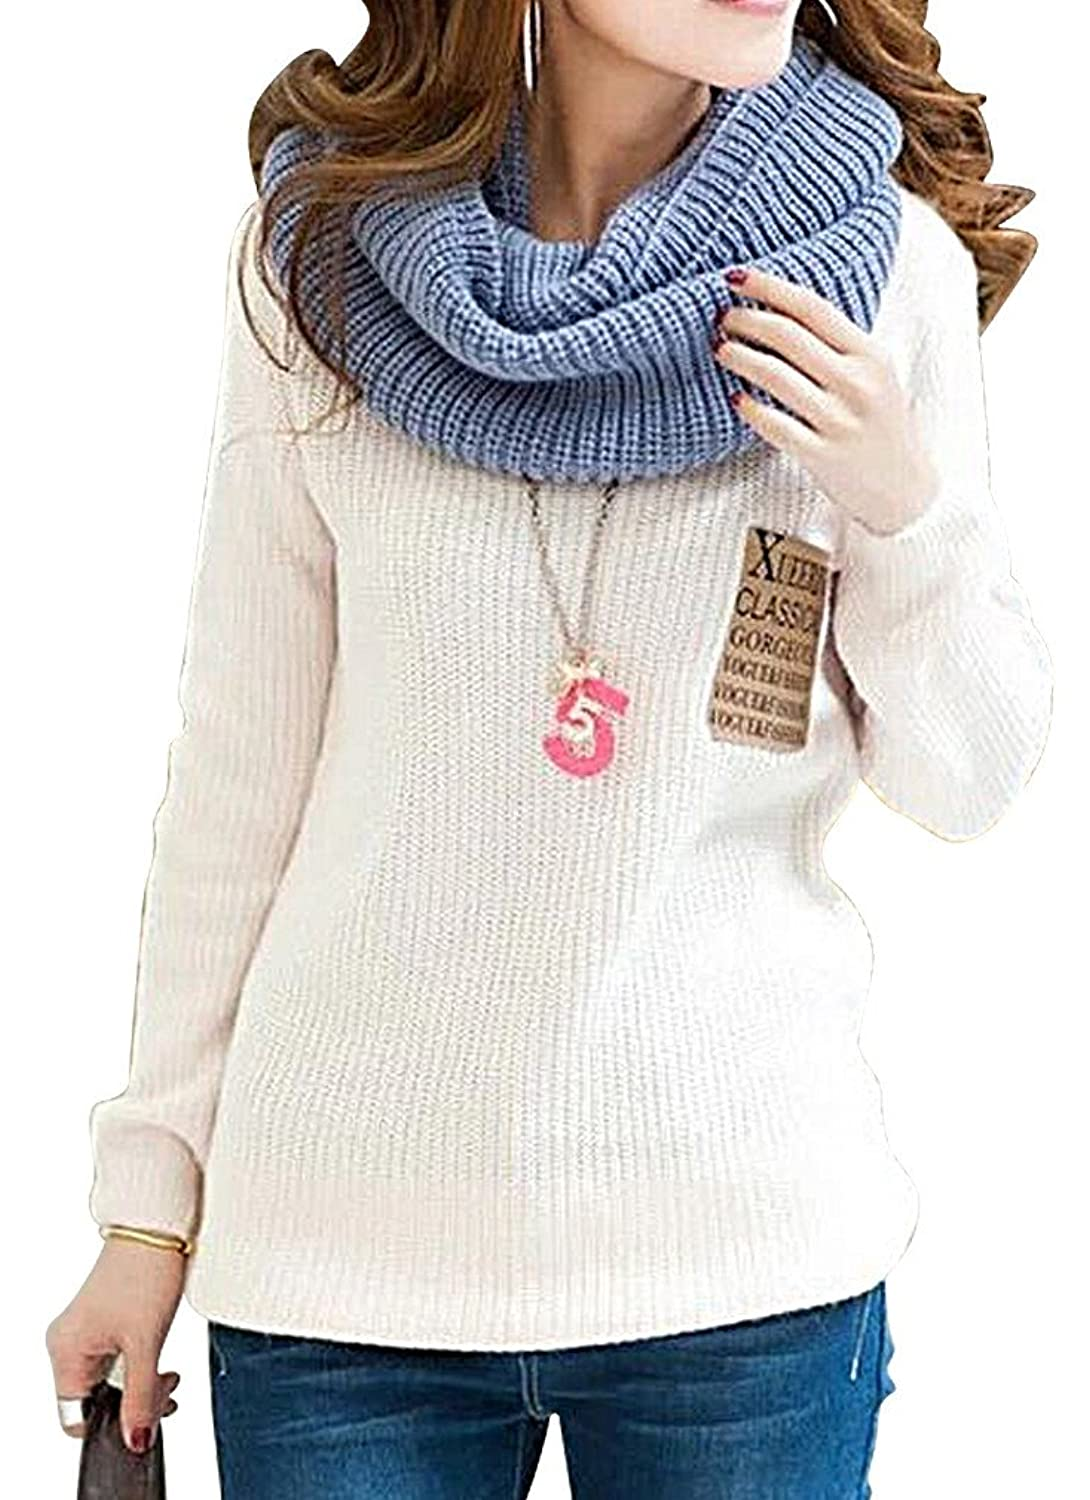 Women's Casual Knitted Sweater Warm Pullover S04